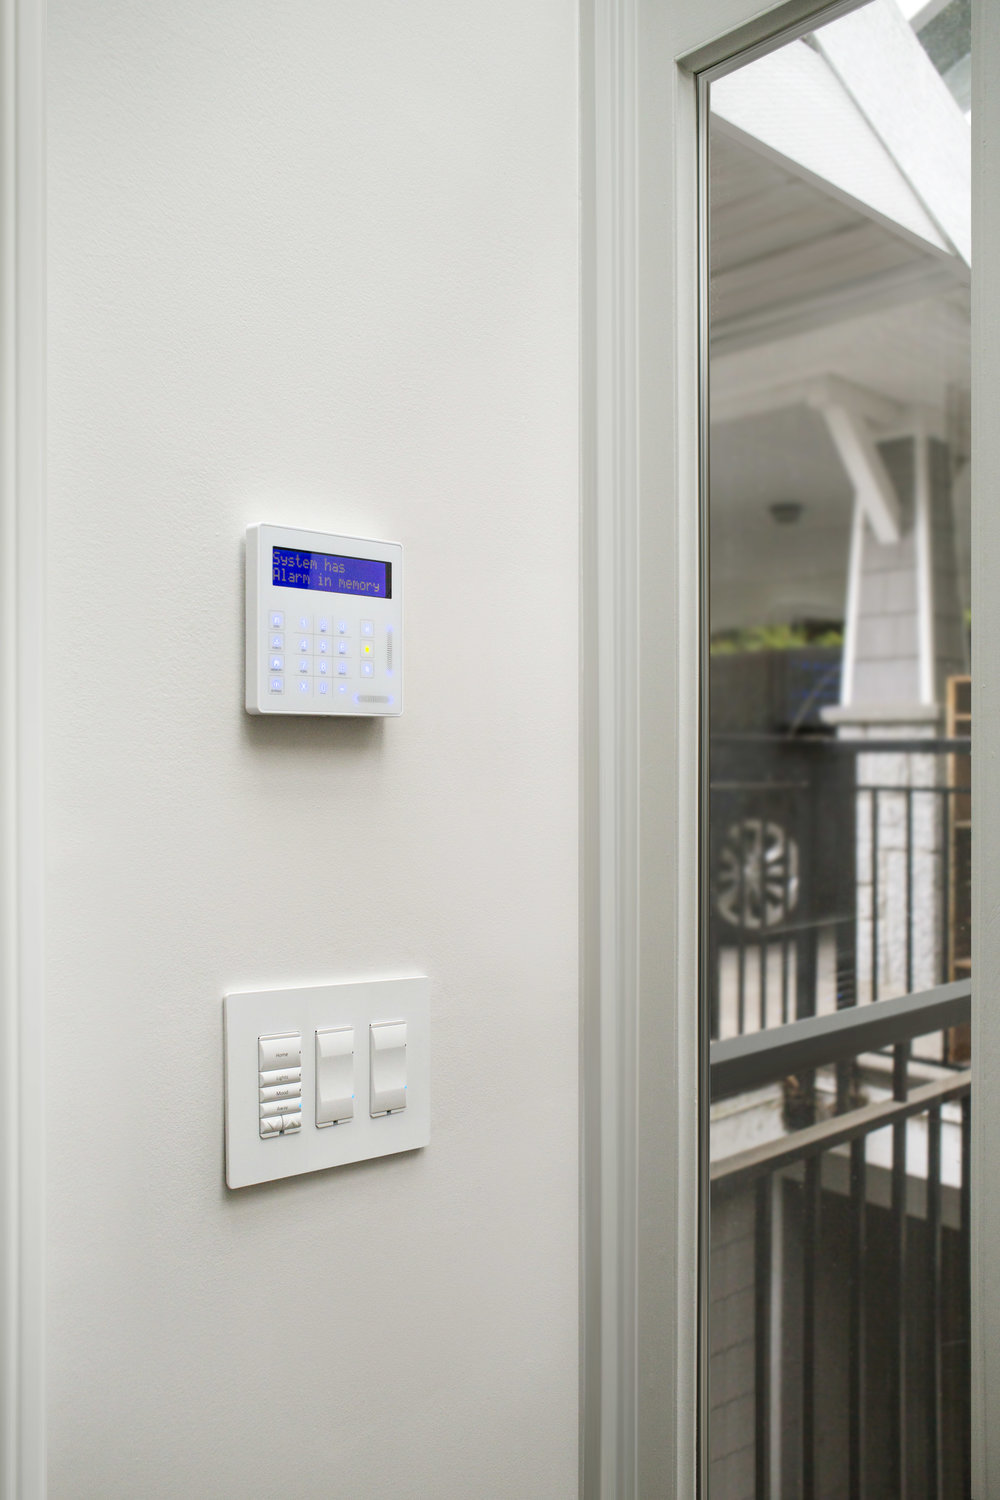 Modern security systems combine both intrusion alarm and access control capabilities that can all be integrated into a wider control system such that accessing a gate with a fob on your keychain also instructs lights to turn on and light your path.